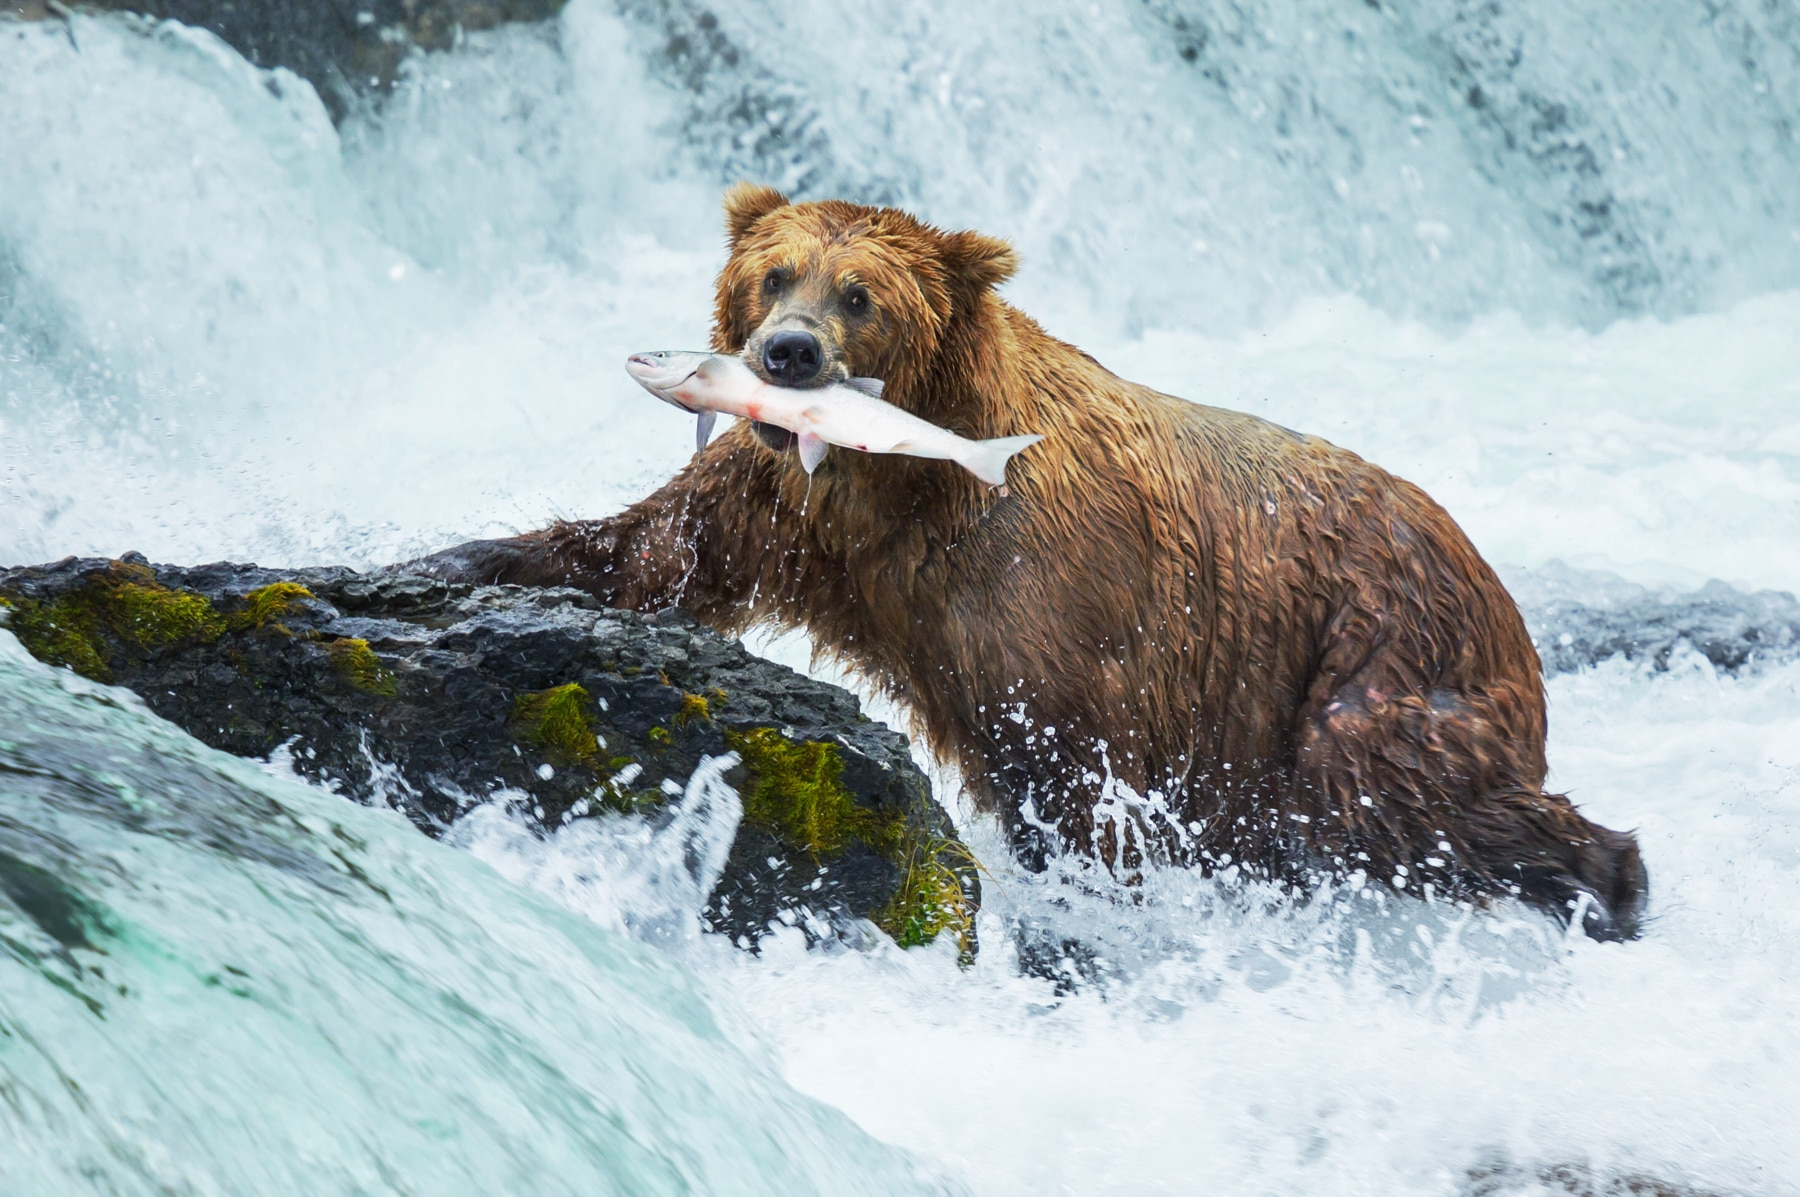 Brown bear catching salmon with his teeth in river (© Shutterstock)